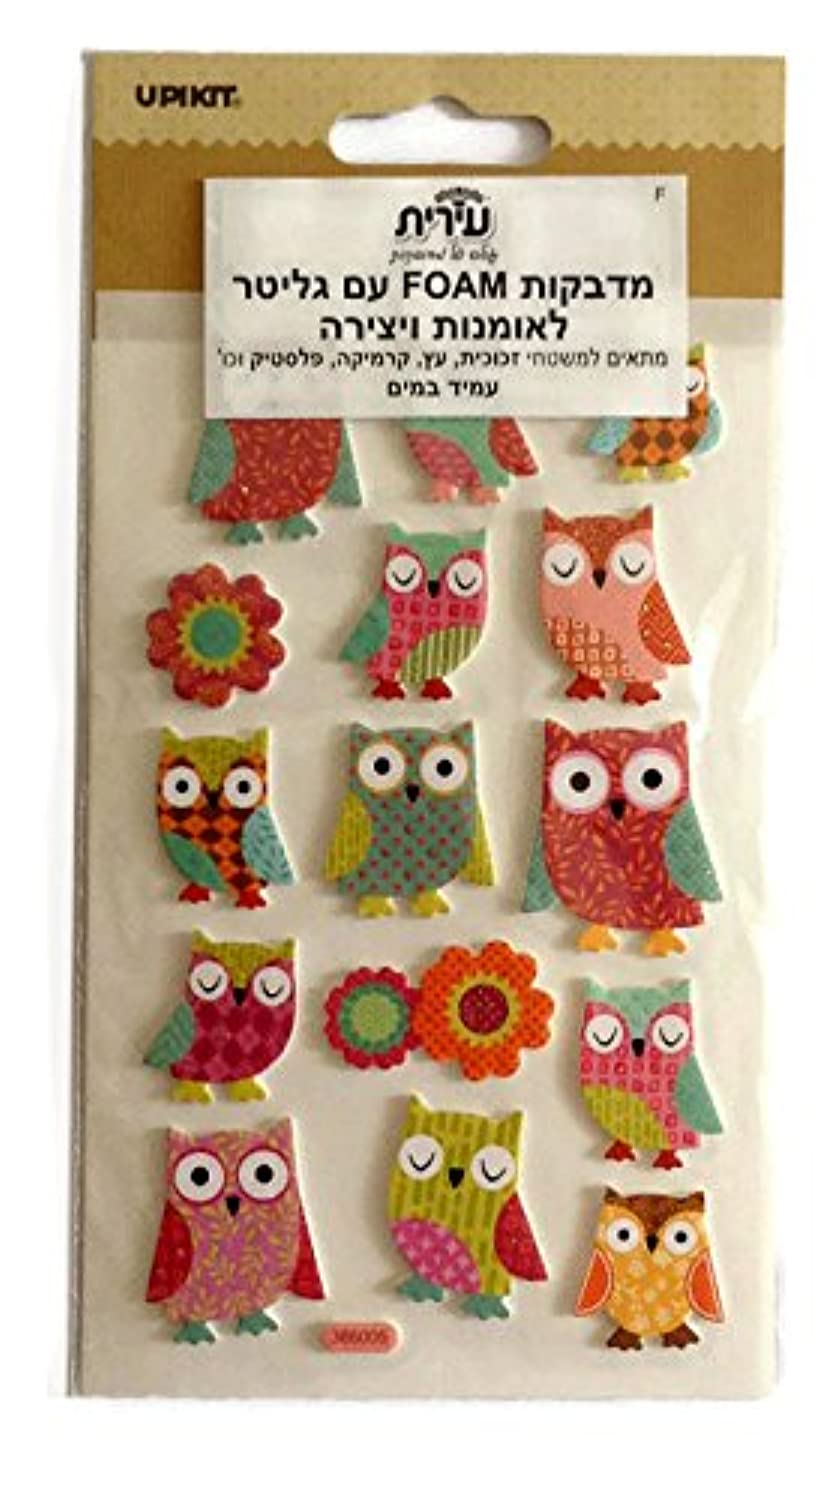 Beautiful Illustrated Owl Stickers for Art Creation and Decoration (Foam Owl)